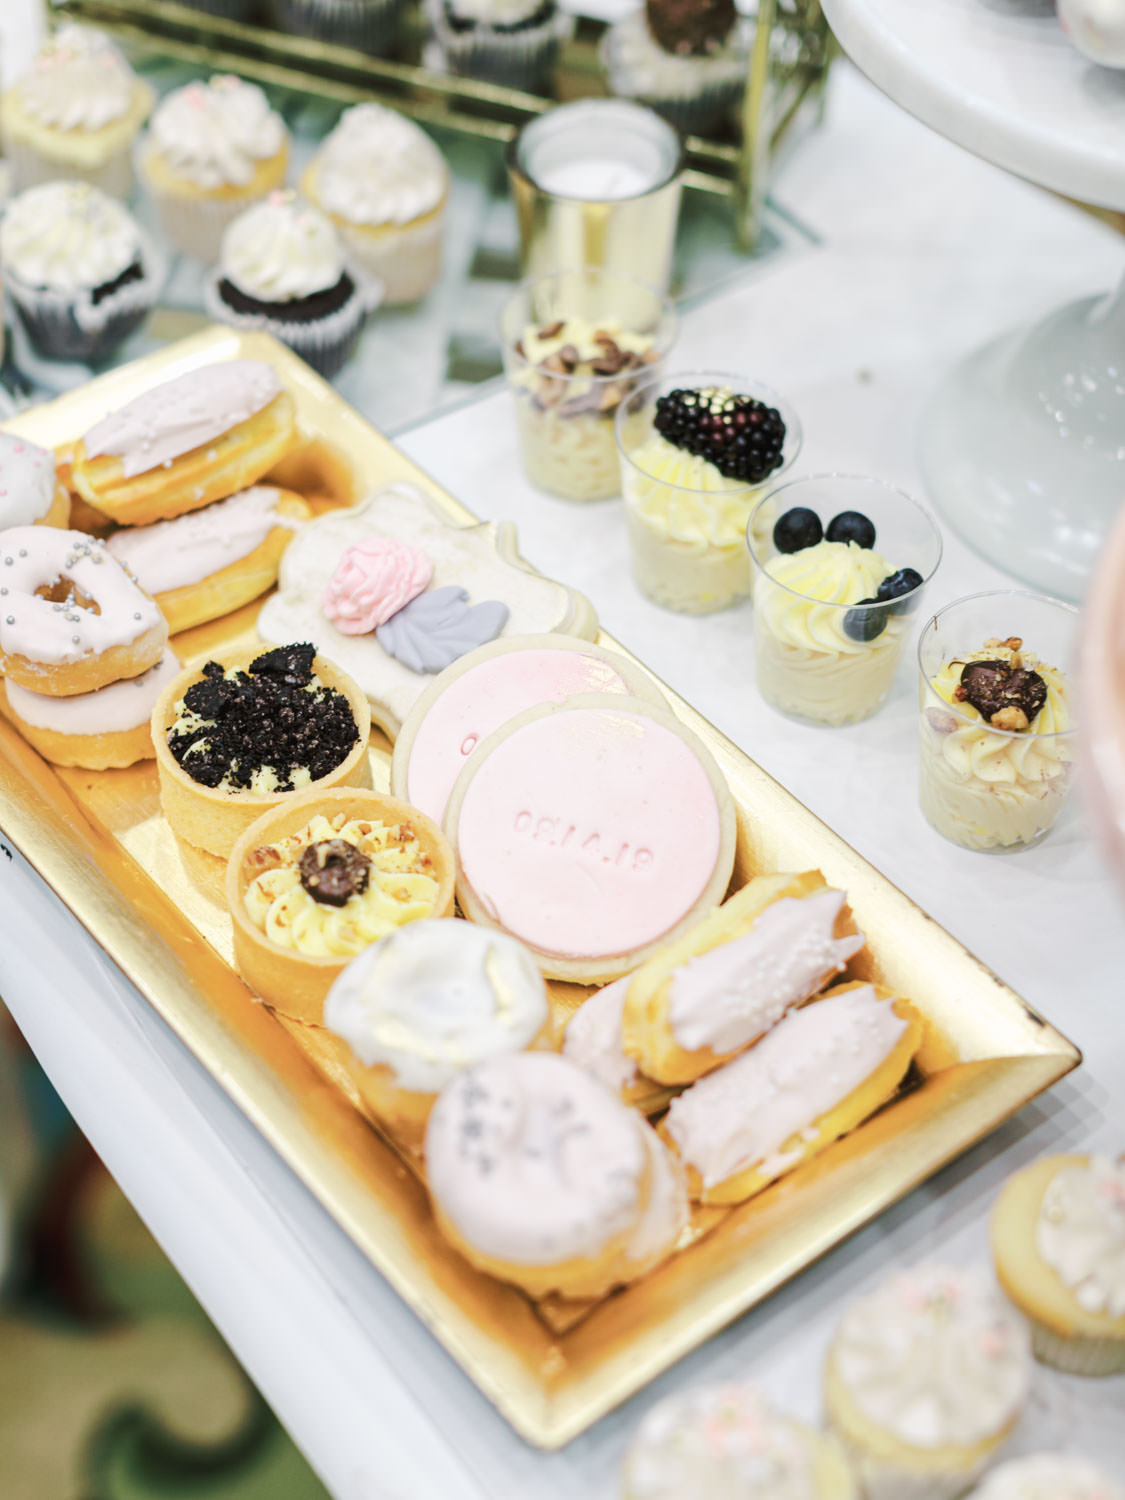 Dessert table with custom wedding date cookies, tartlets, eclairs, and cake cups. Wedding at Rancho Bernardo Inn in the Aragon Ballroom. photo by Cavin Elizabeth Photography